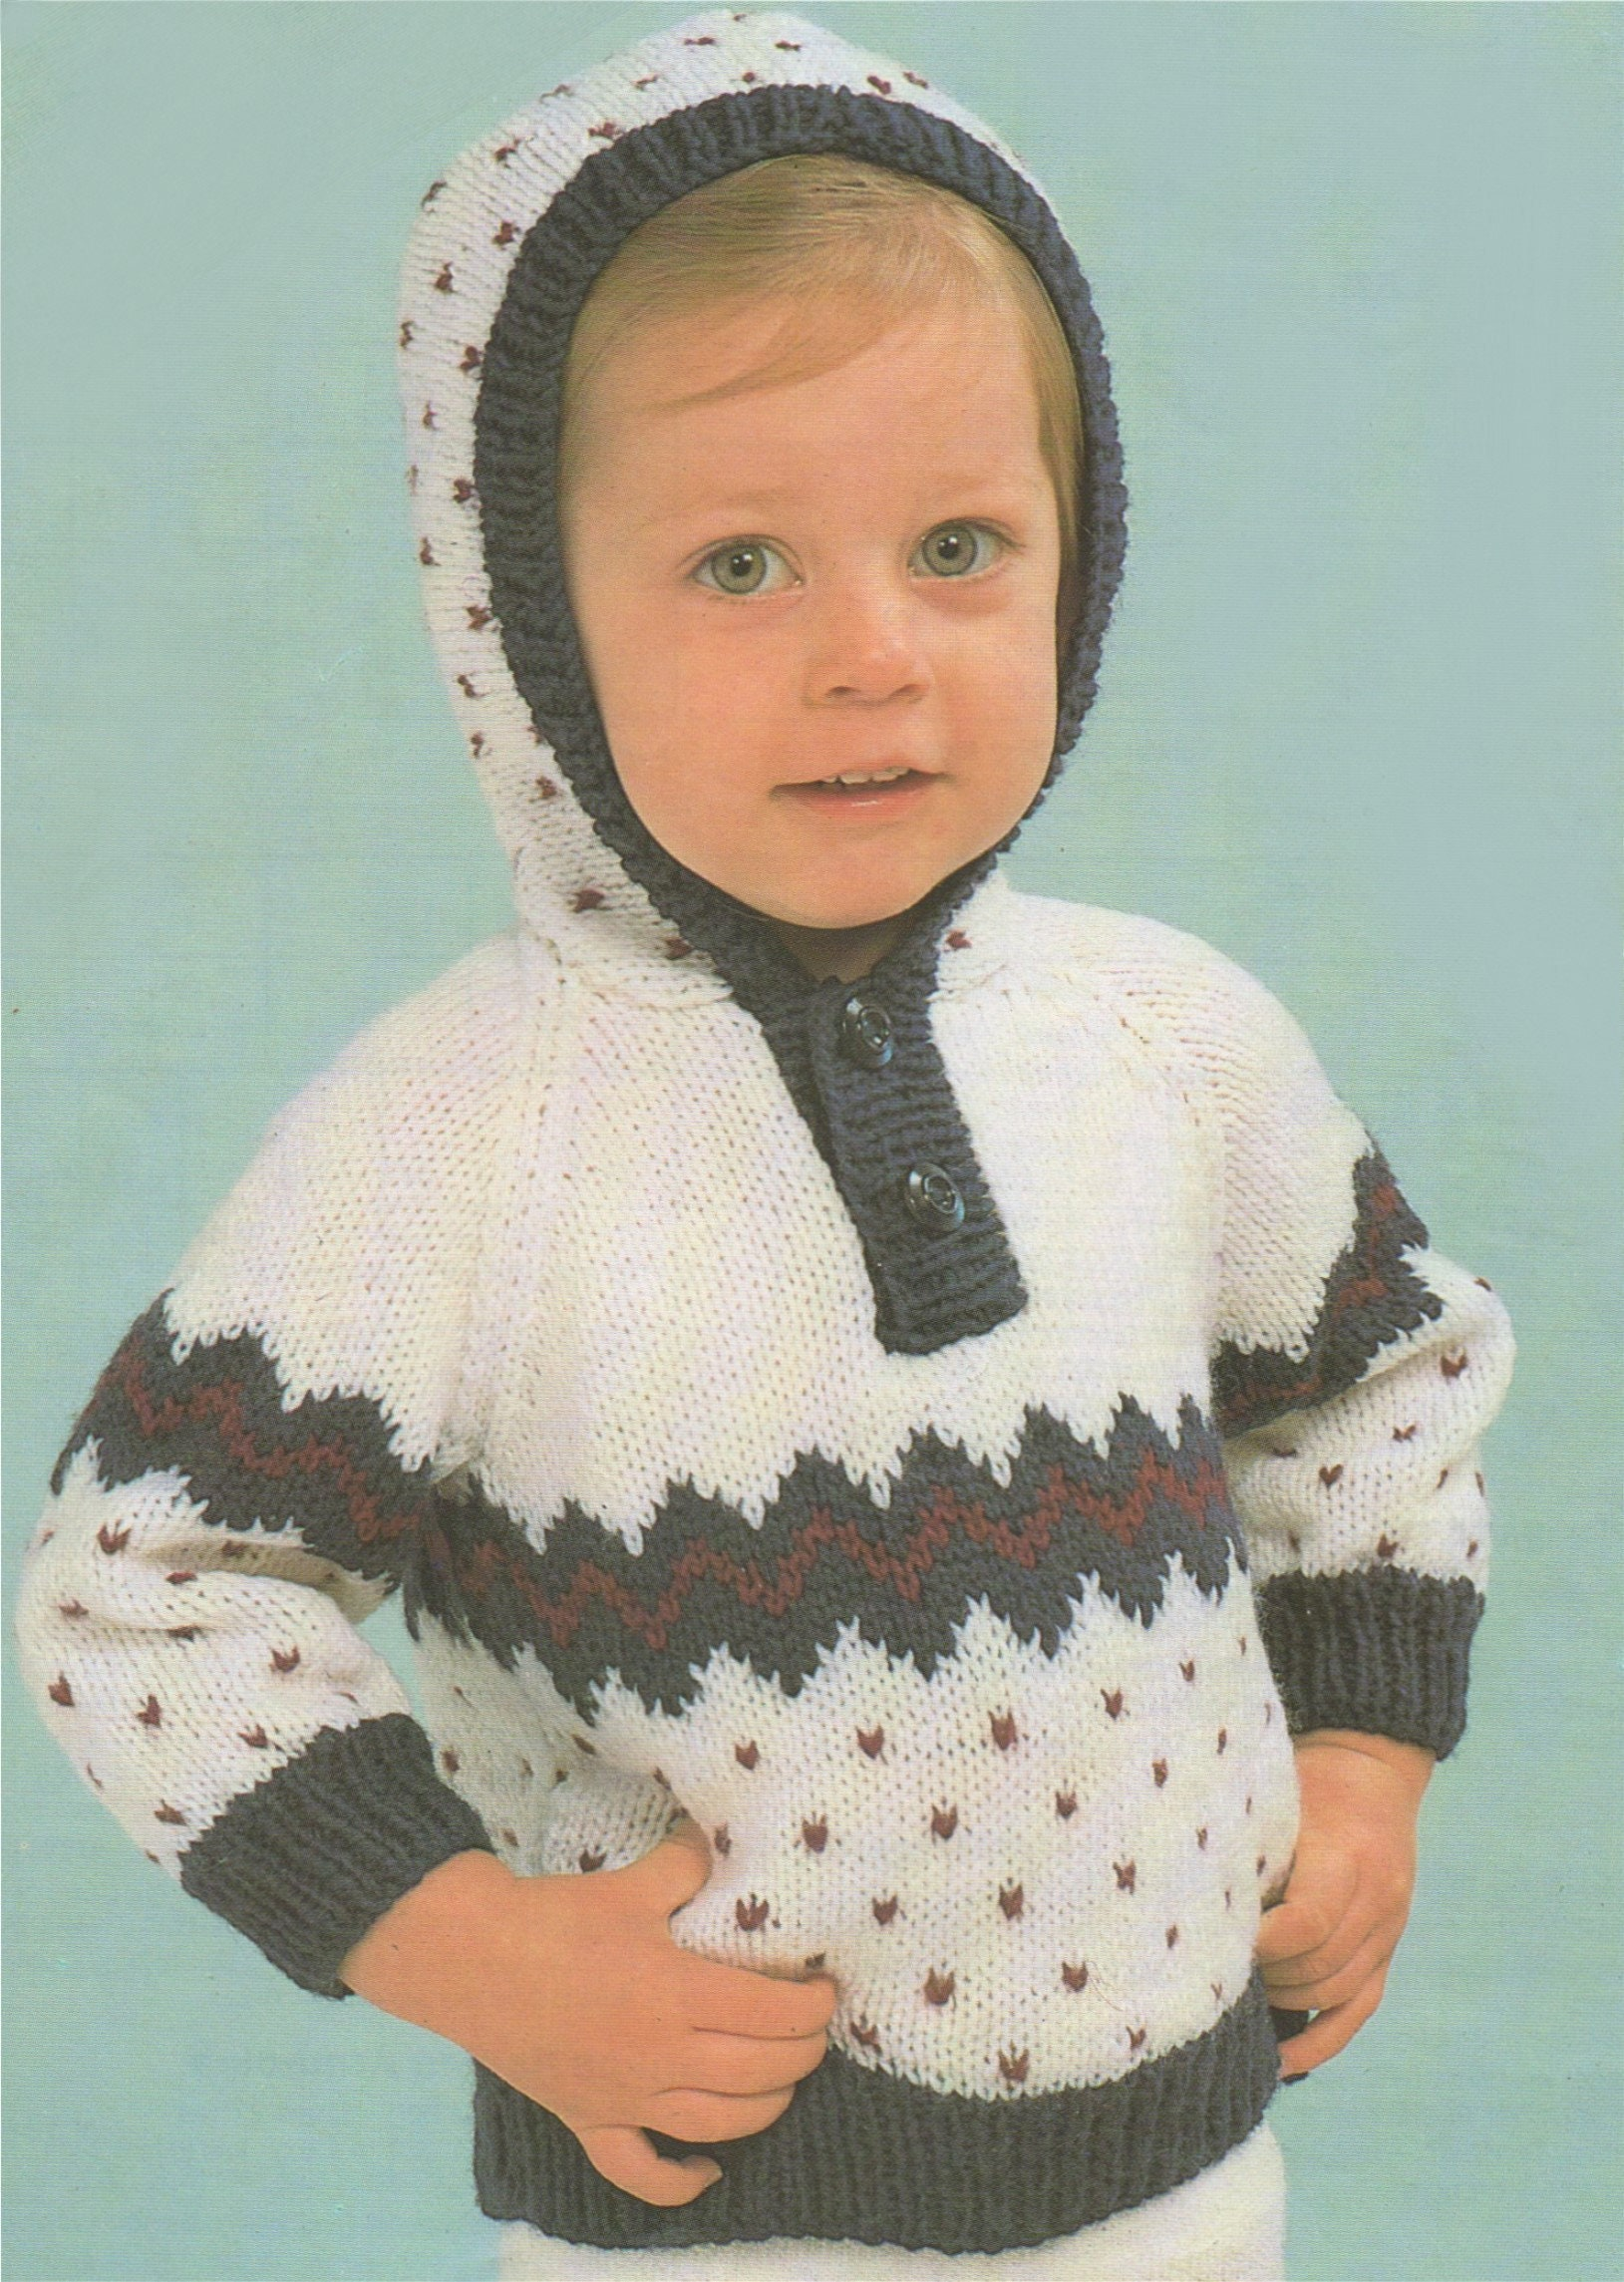 Babies Fair Isle Hoodie Sweater Knitting Pattern Pdf Baby Toddlers Boys Or Girls 18 20 22 Inch Chest Hooded Fair Isle Jumper Download